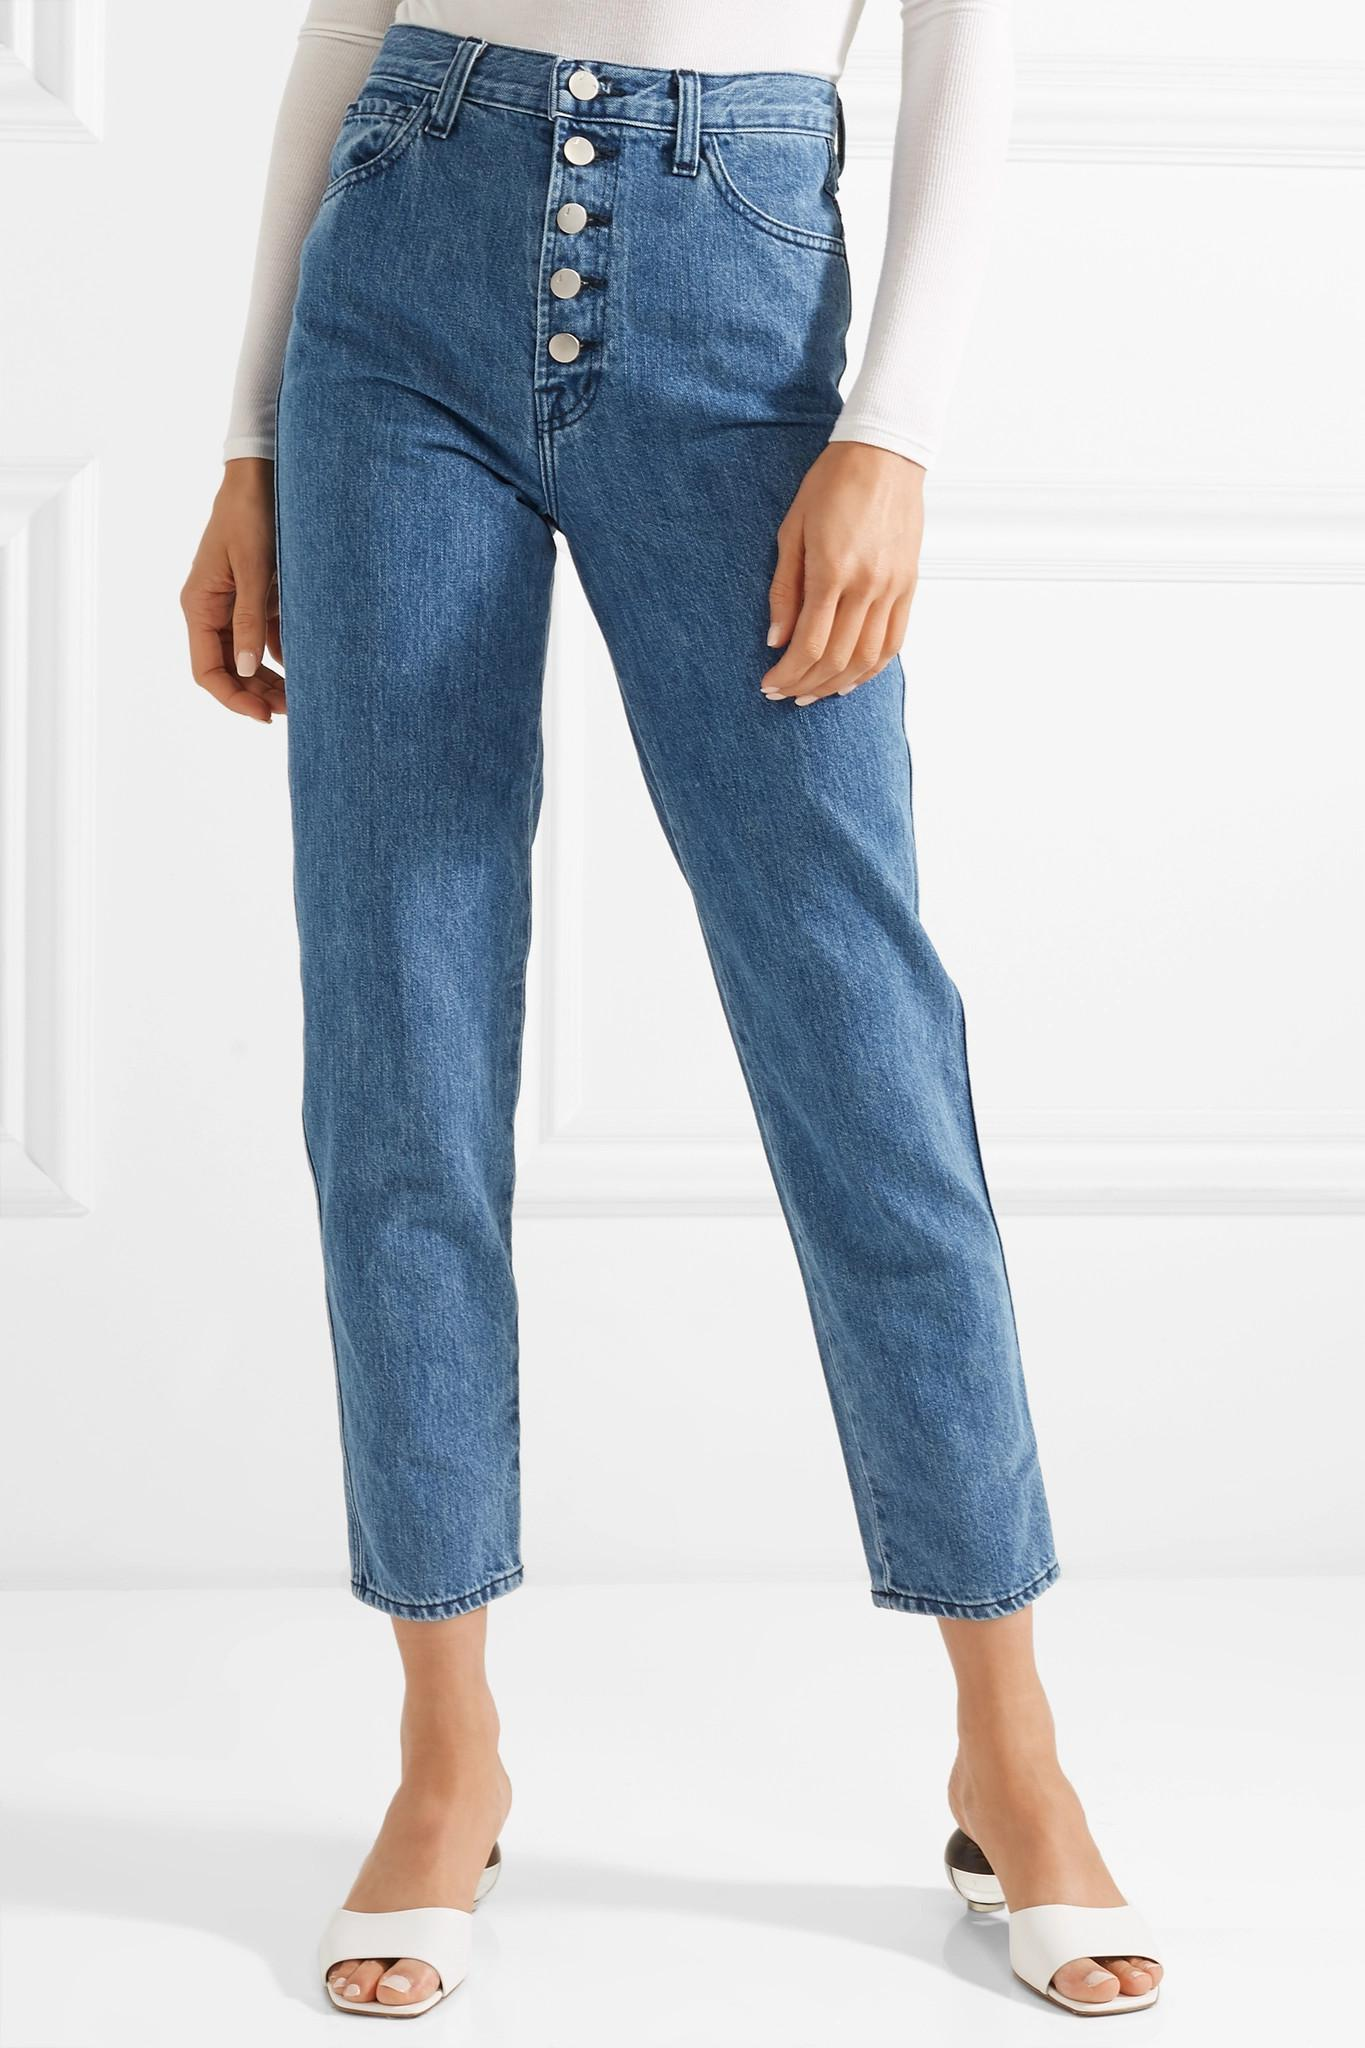 431ebded J Brand Heather Cropped High-rise Straight-leg Jeans in Blue - Lyst